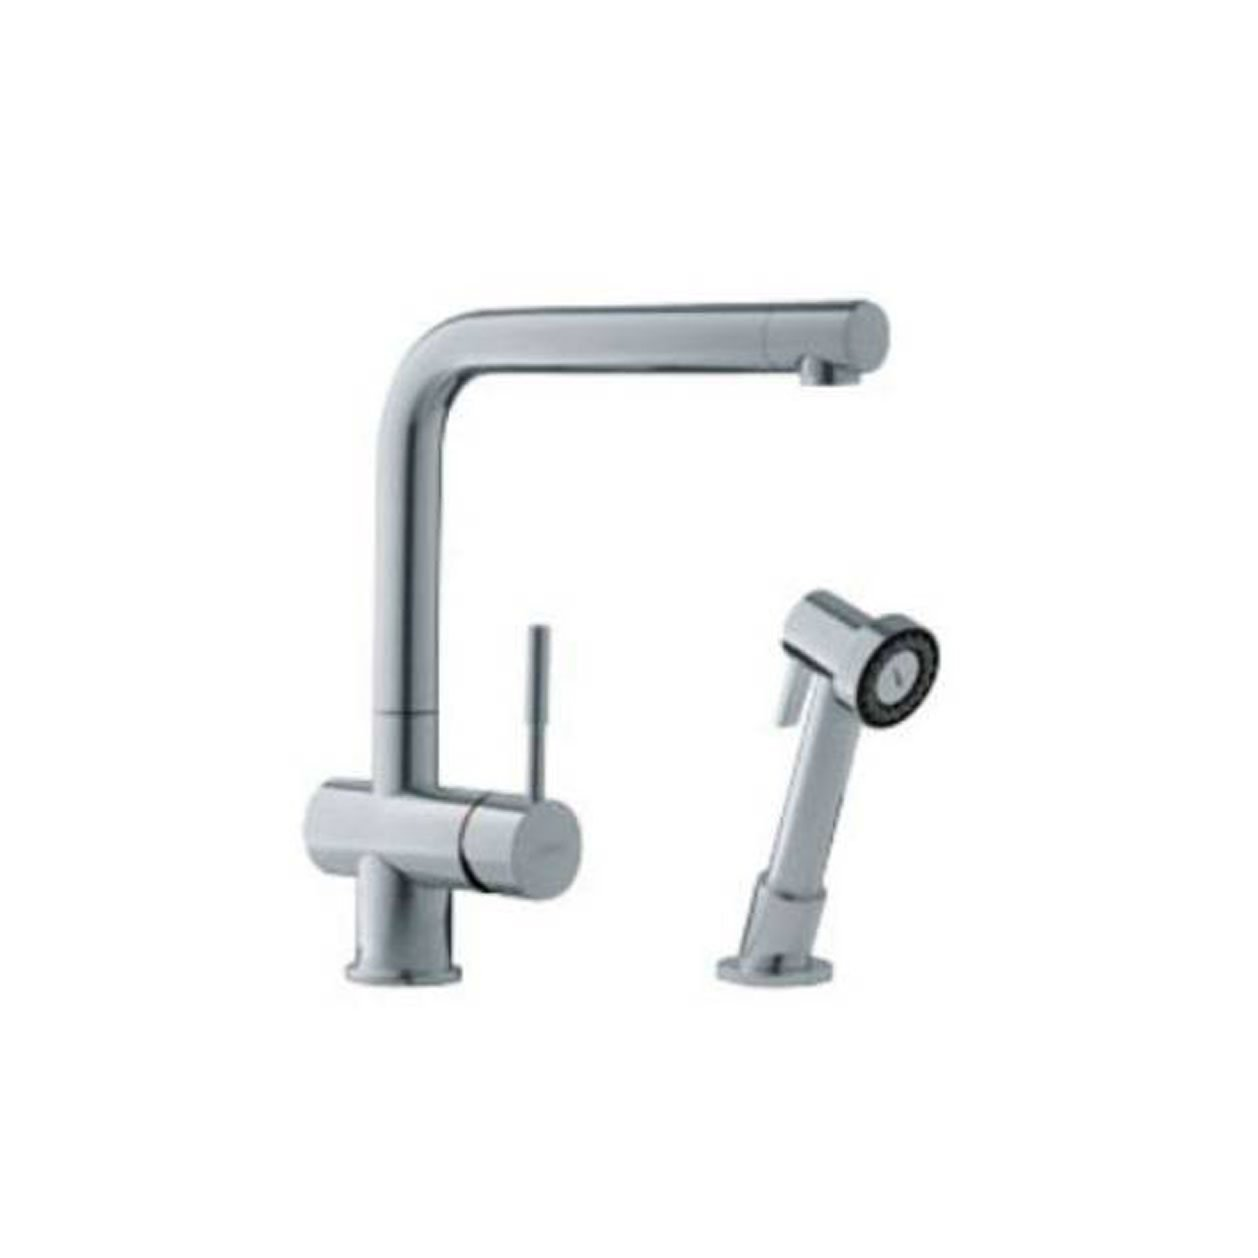 FRANKE FF-5080 SERIES SINGLE LEVER CAST SPOUT FAUCET WITH SIDE SPRAY - SATIN NICKEL FINISH